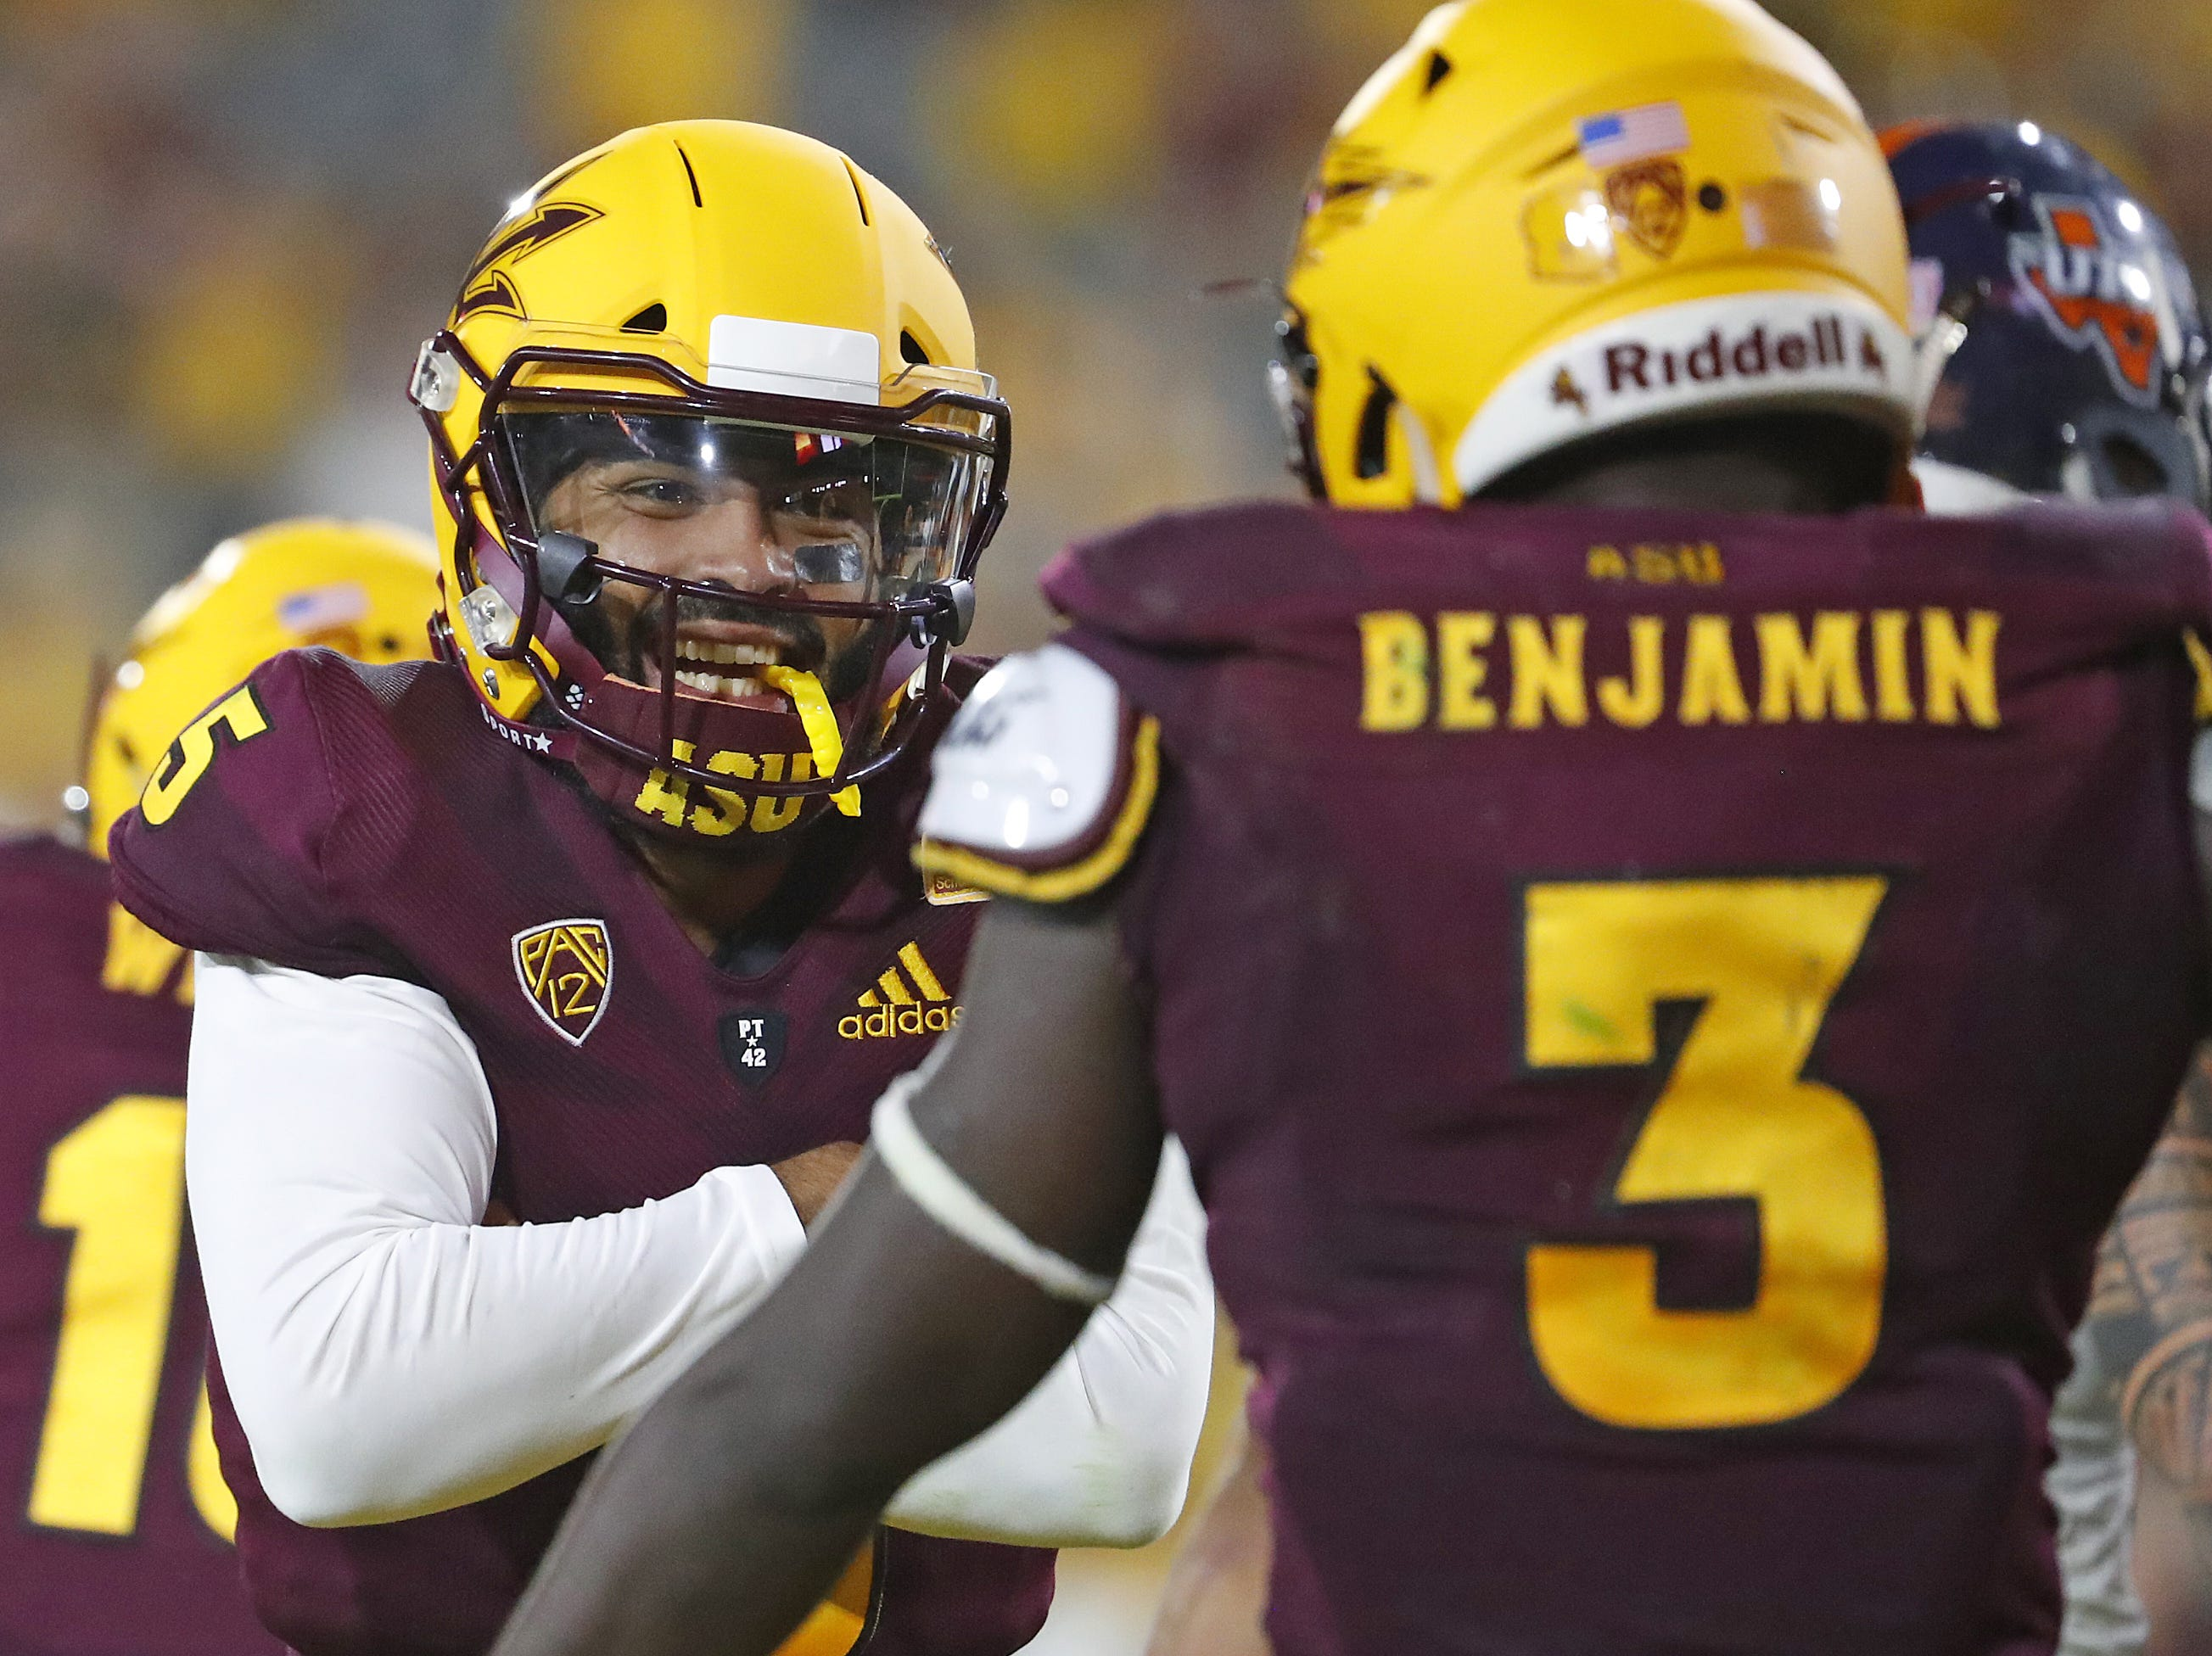 Arizona State Sun Devils quarterback Manny Wilkins (5) celebrates with Arizona State Sun Devils running back Eno Benjamin (3) after Benjamin scored a touchdown against UTSA during the second half at Sun Devil Stadium in Tempe, Ariz. on Sept. 1, 2018.